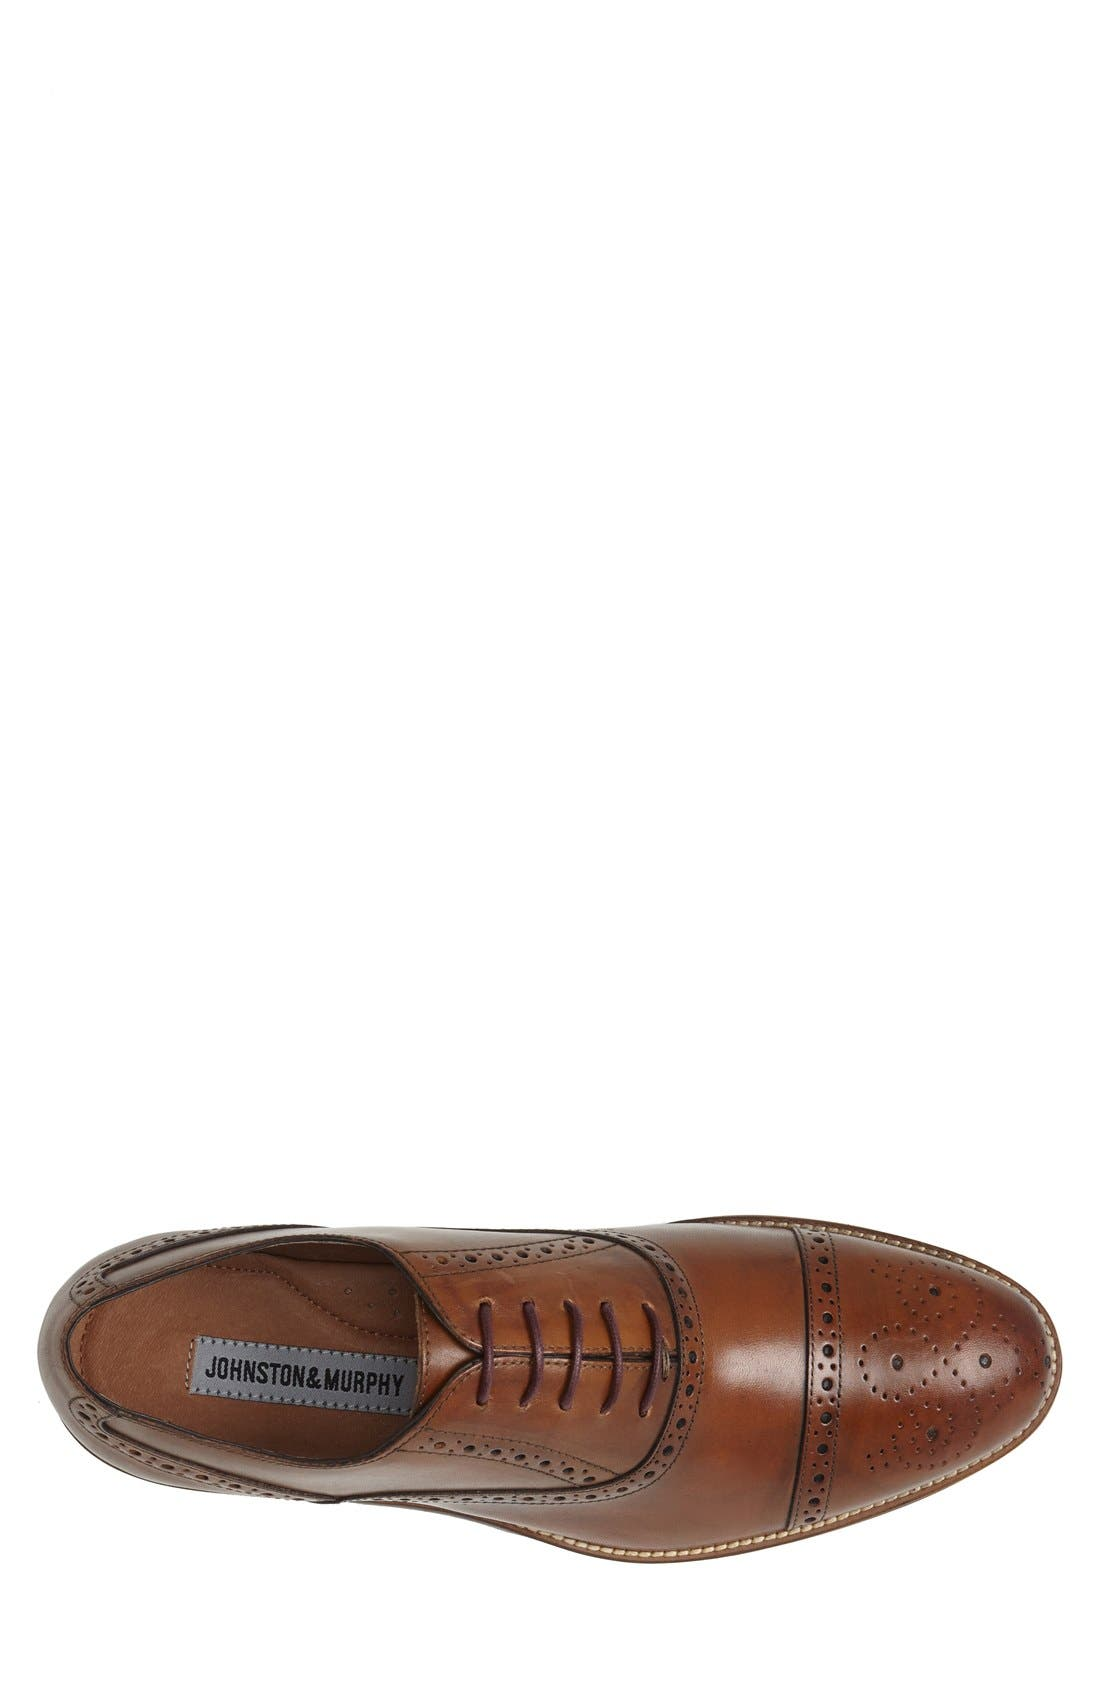 Alternate Image 3  - Johnston & Murphy Conard Cap Toe Oxford (Men)